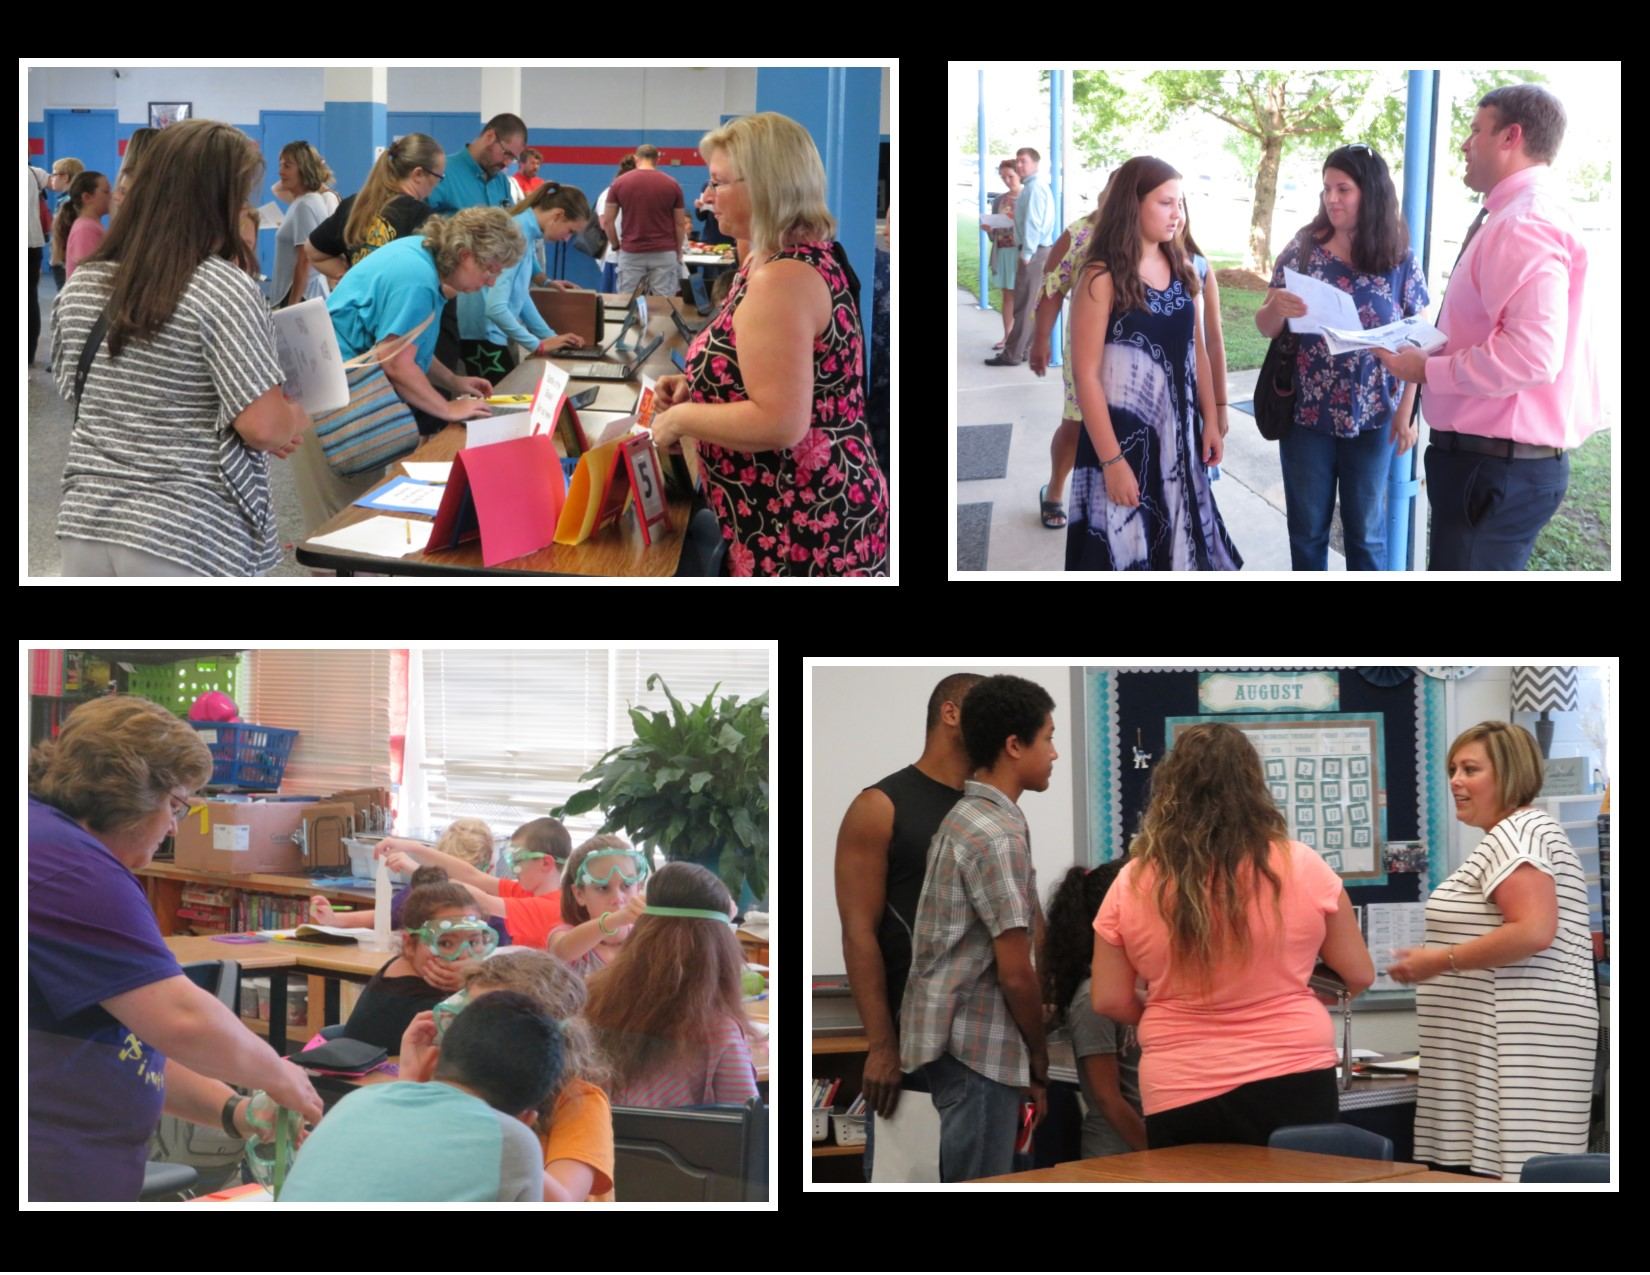 collage of photos from august showing students parents and staff at open house and during the first days of schcool